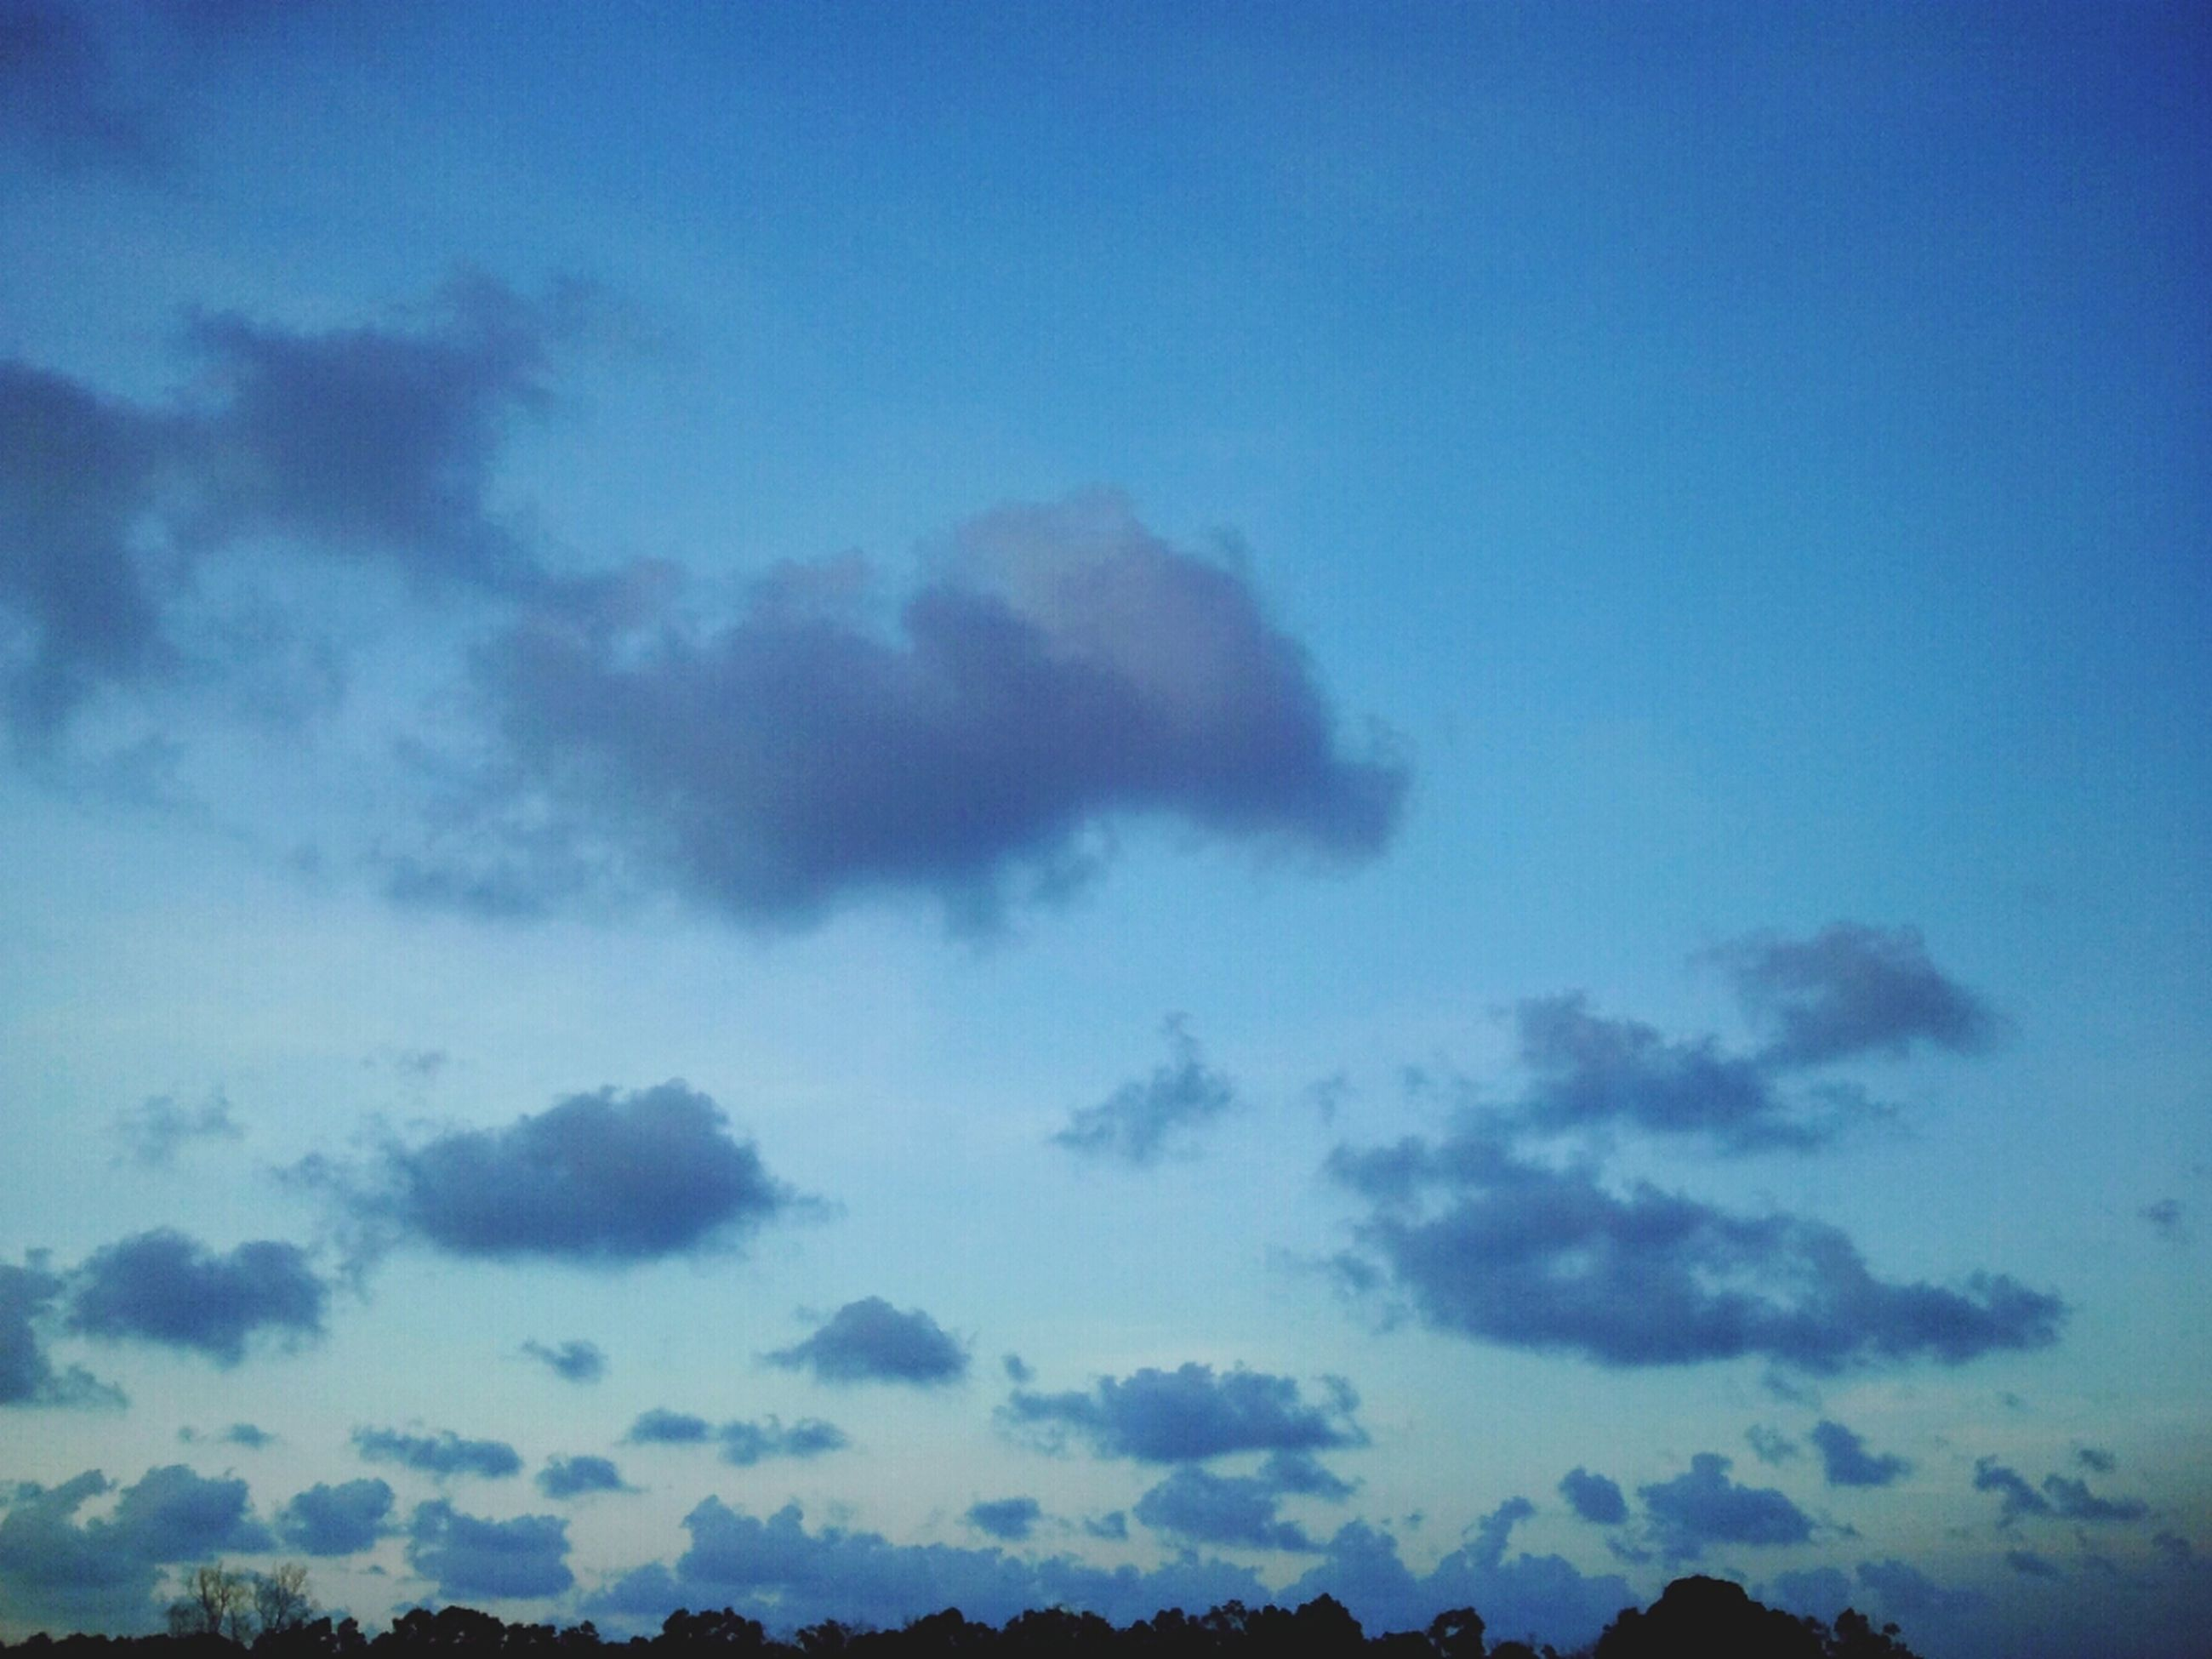 sky, blue, scenics, tranquility, beauty in nature, tranquil scene, cloud - sky, low angle view, nature, silhouette, cloud, idyllic, cloudscape, copy space, outdoors, dusk, cloudy, no people, majestic, weather